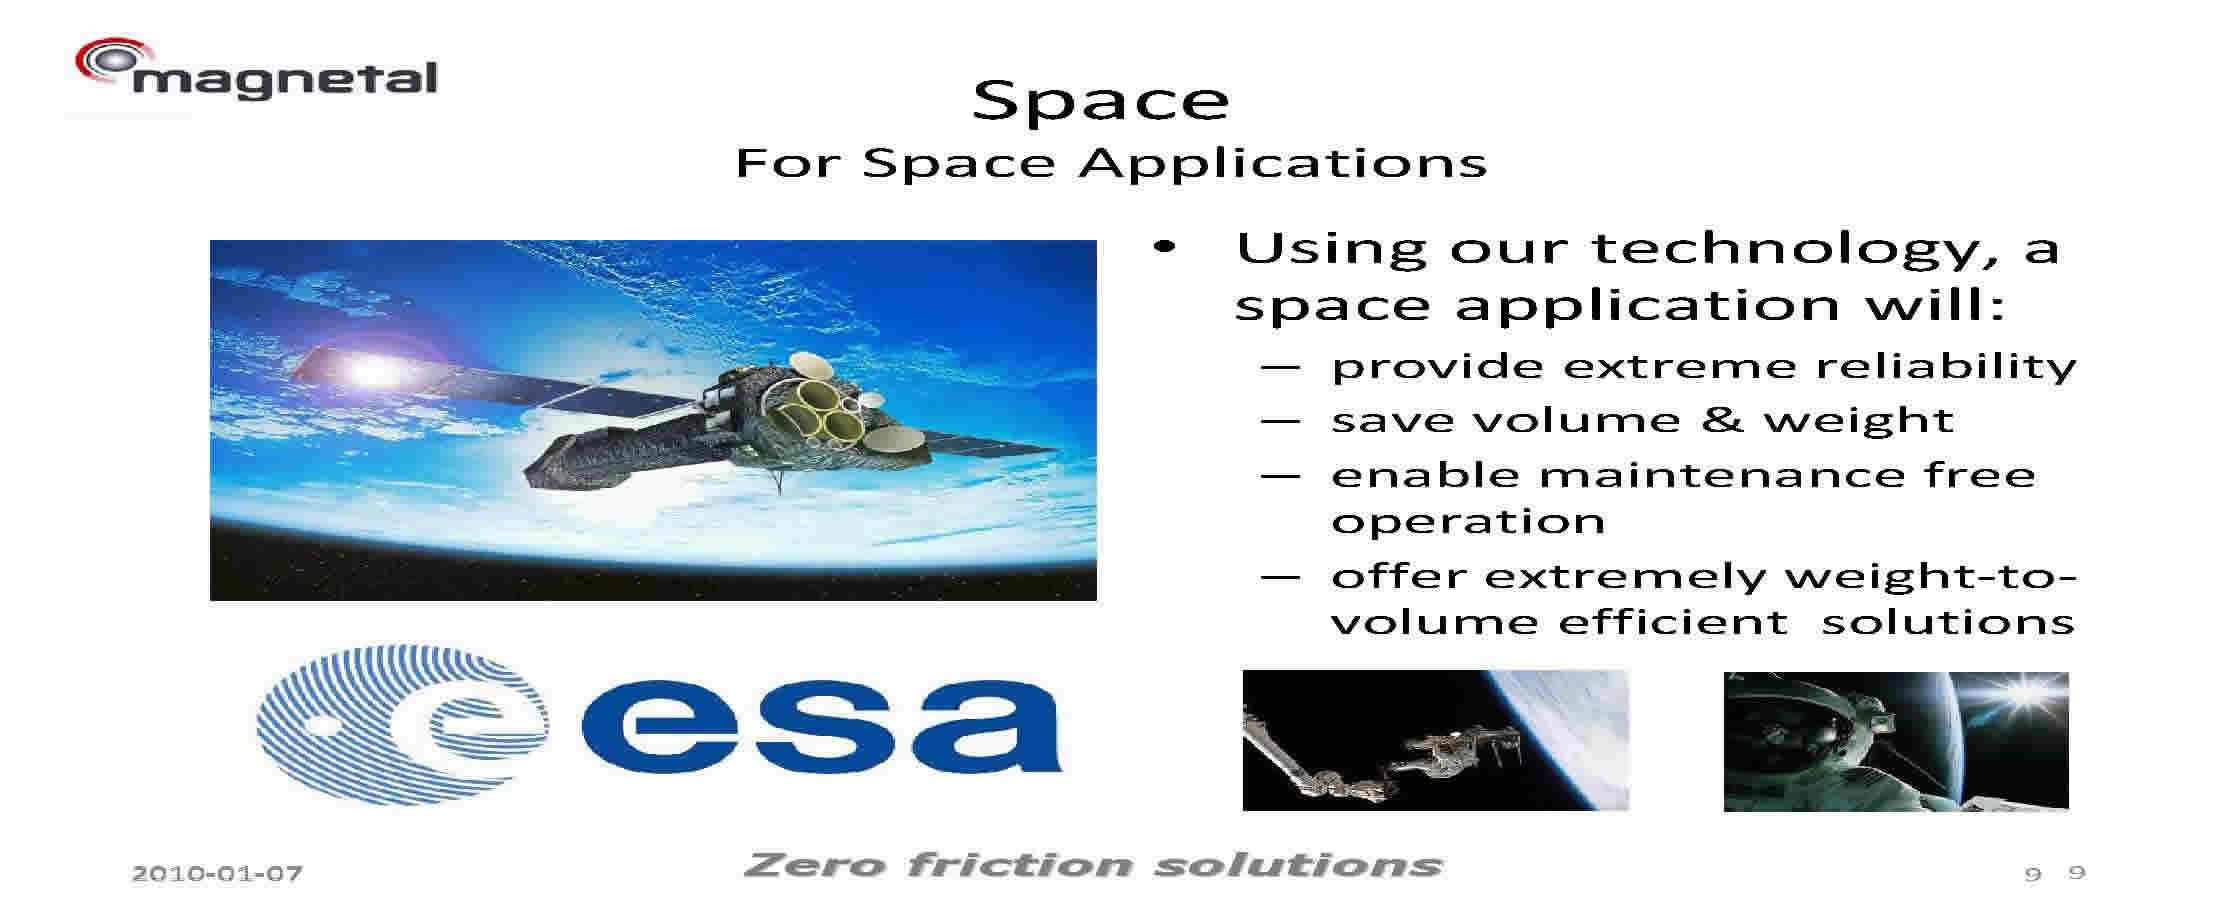 Added Value to Space Applications  Using Magnetal Passive Technology